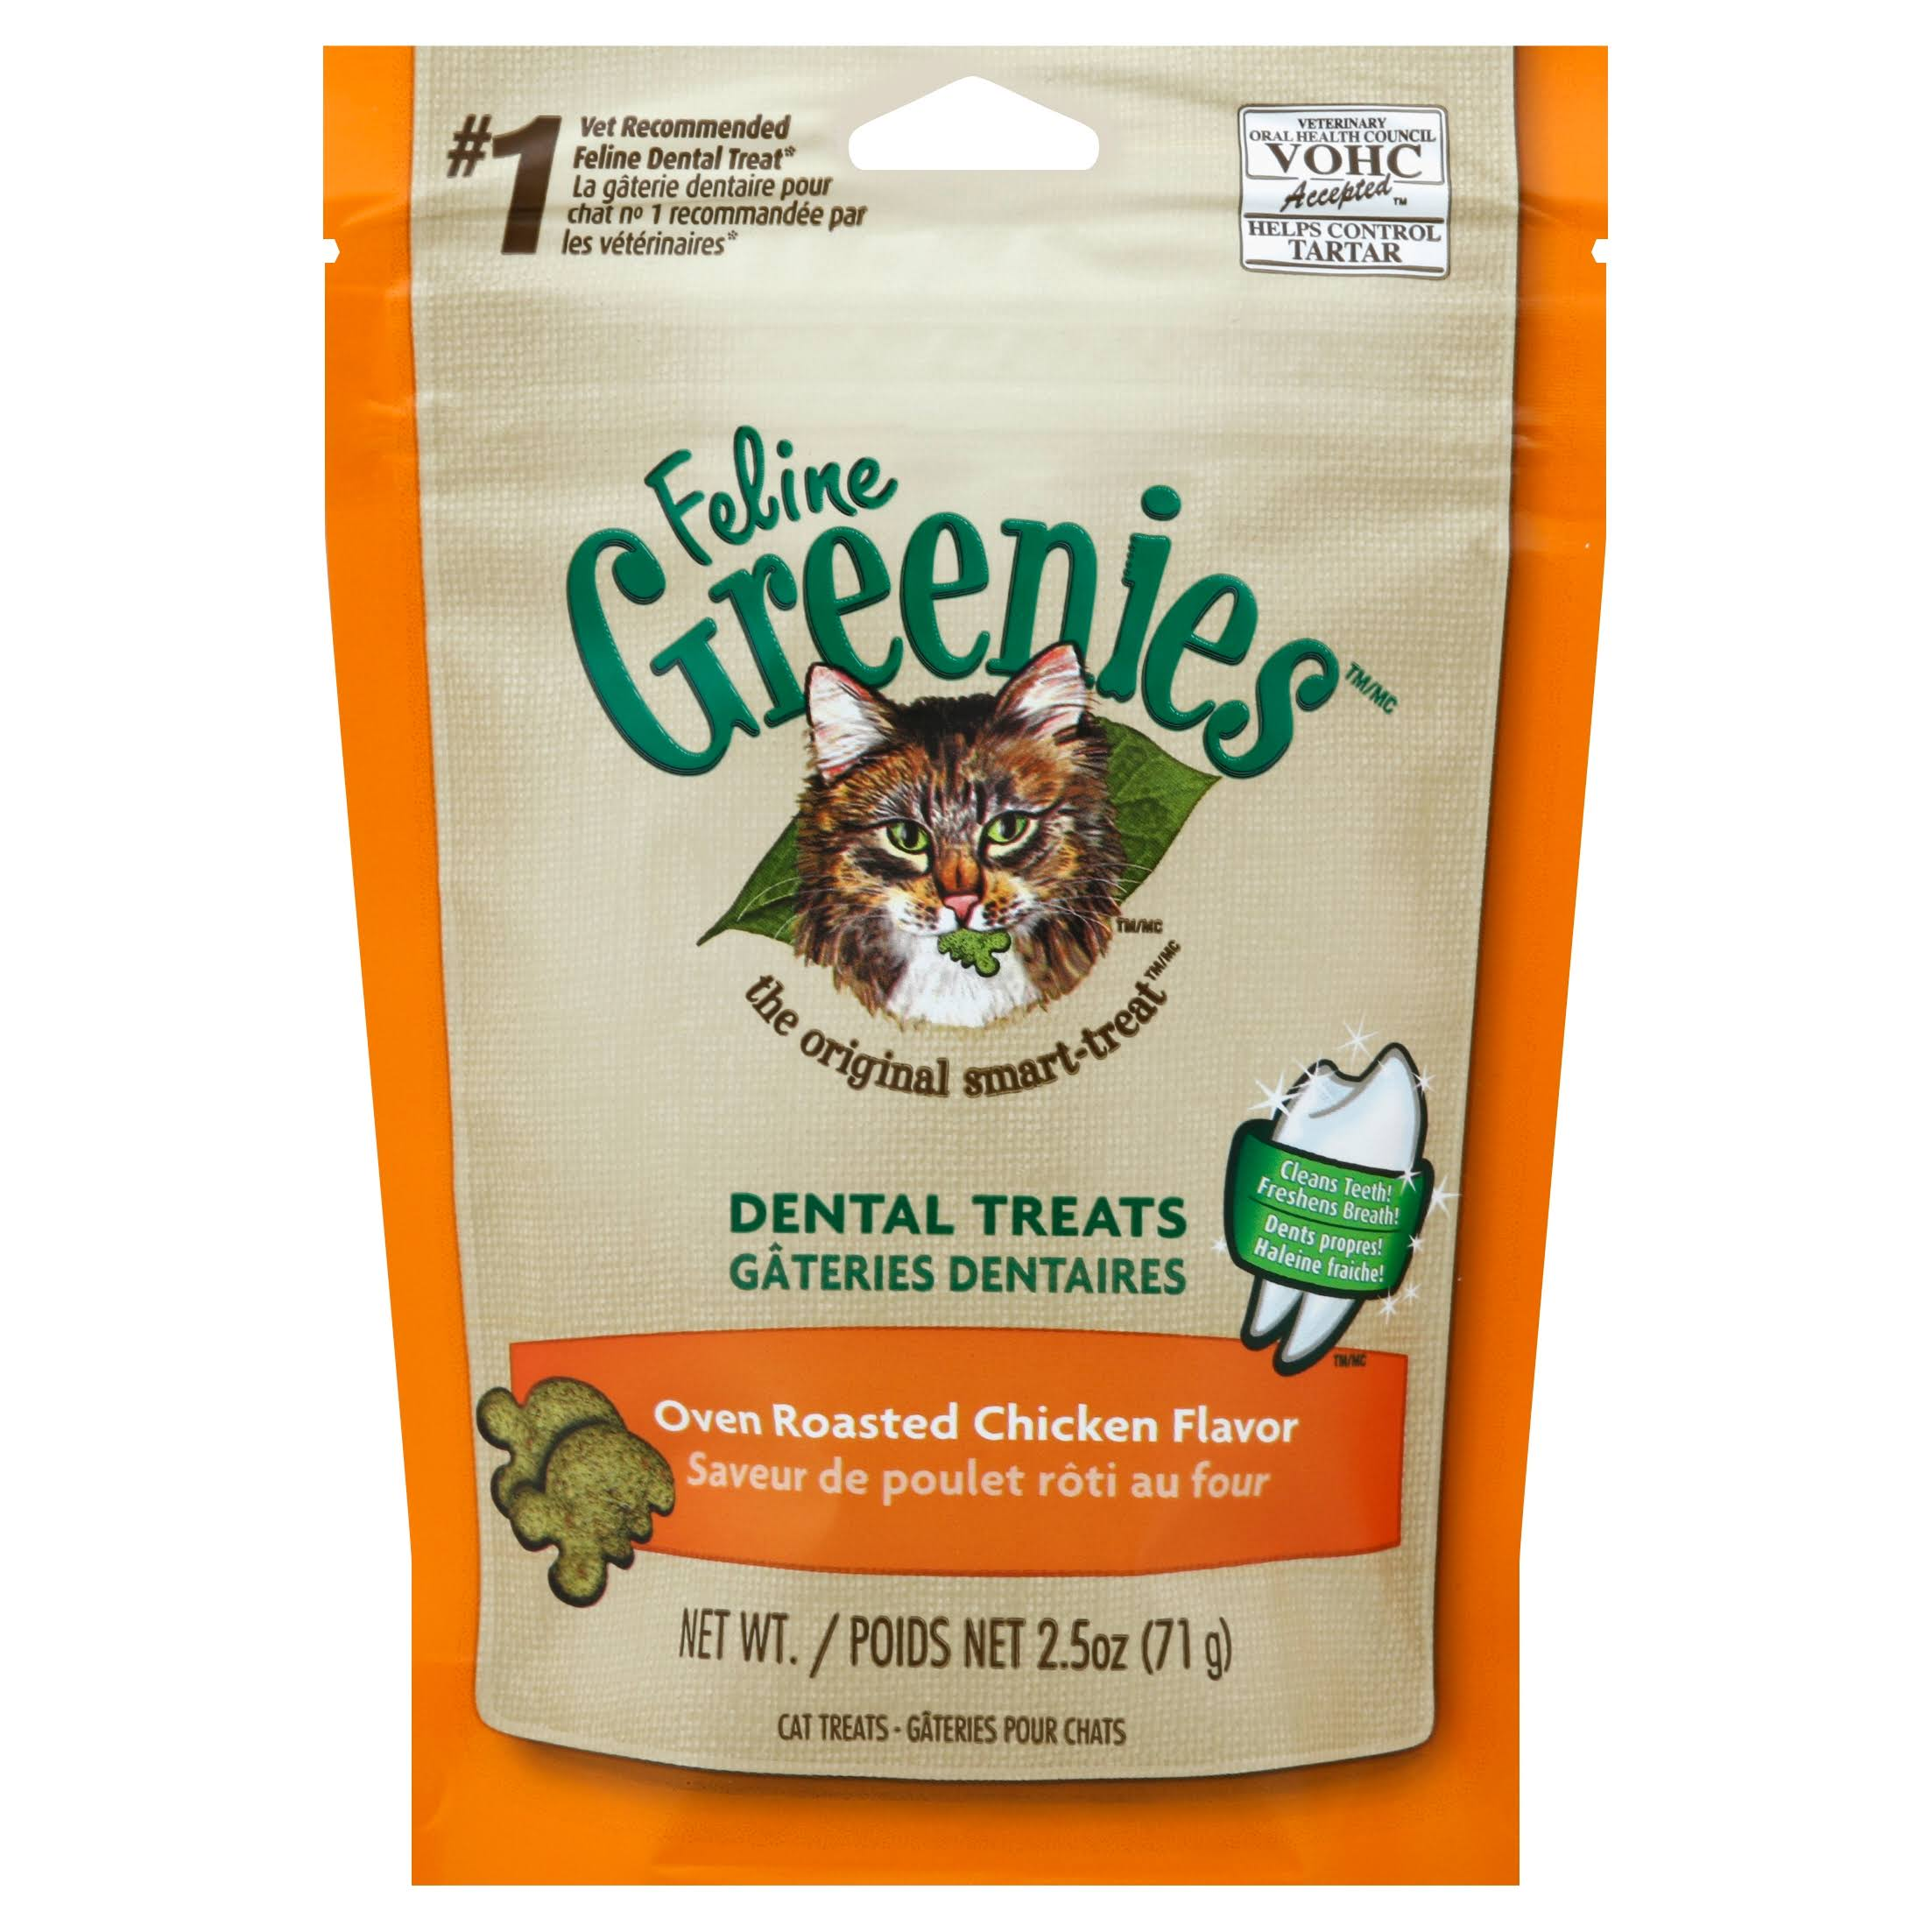 Feline Greenies Dental Cat Treats - Oven Roasted Chicken, 2.5oz